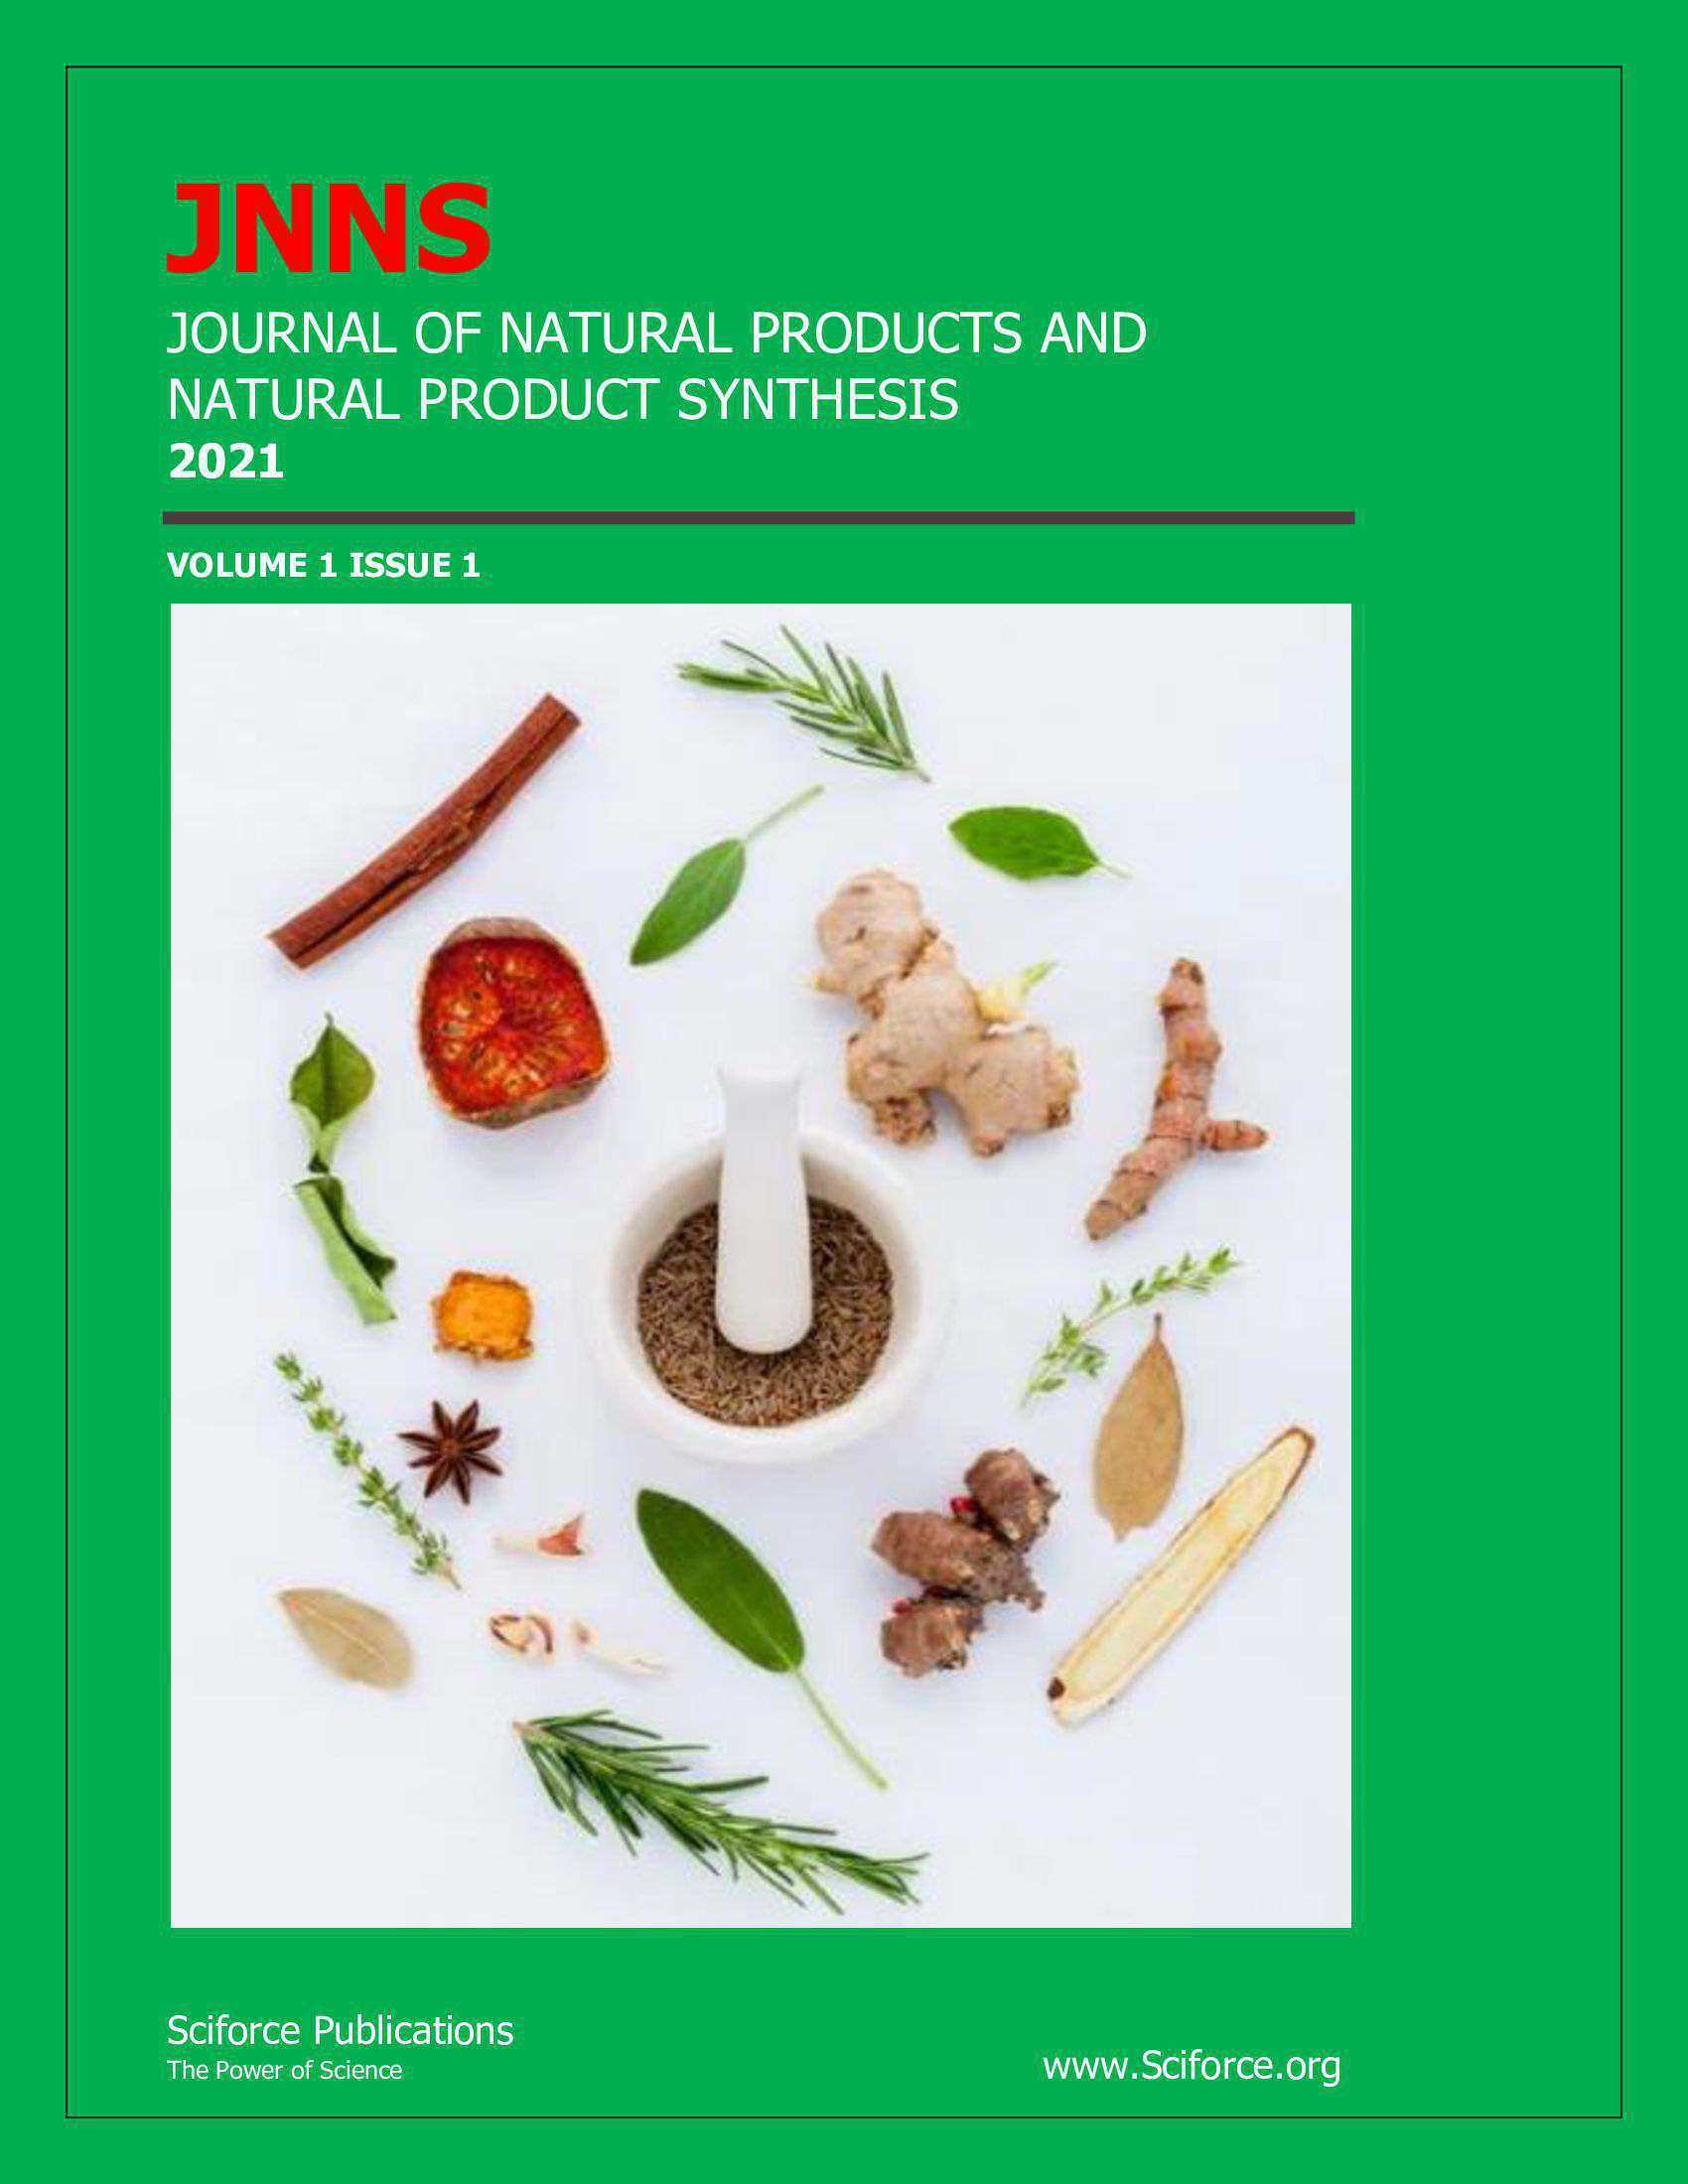 Journal of Natural Products and Natural Product Synthesis